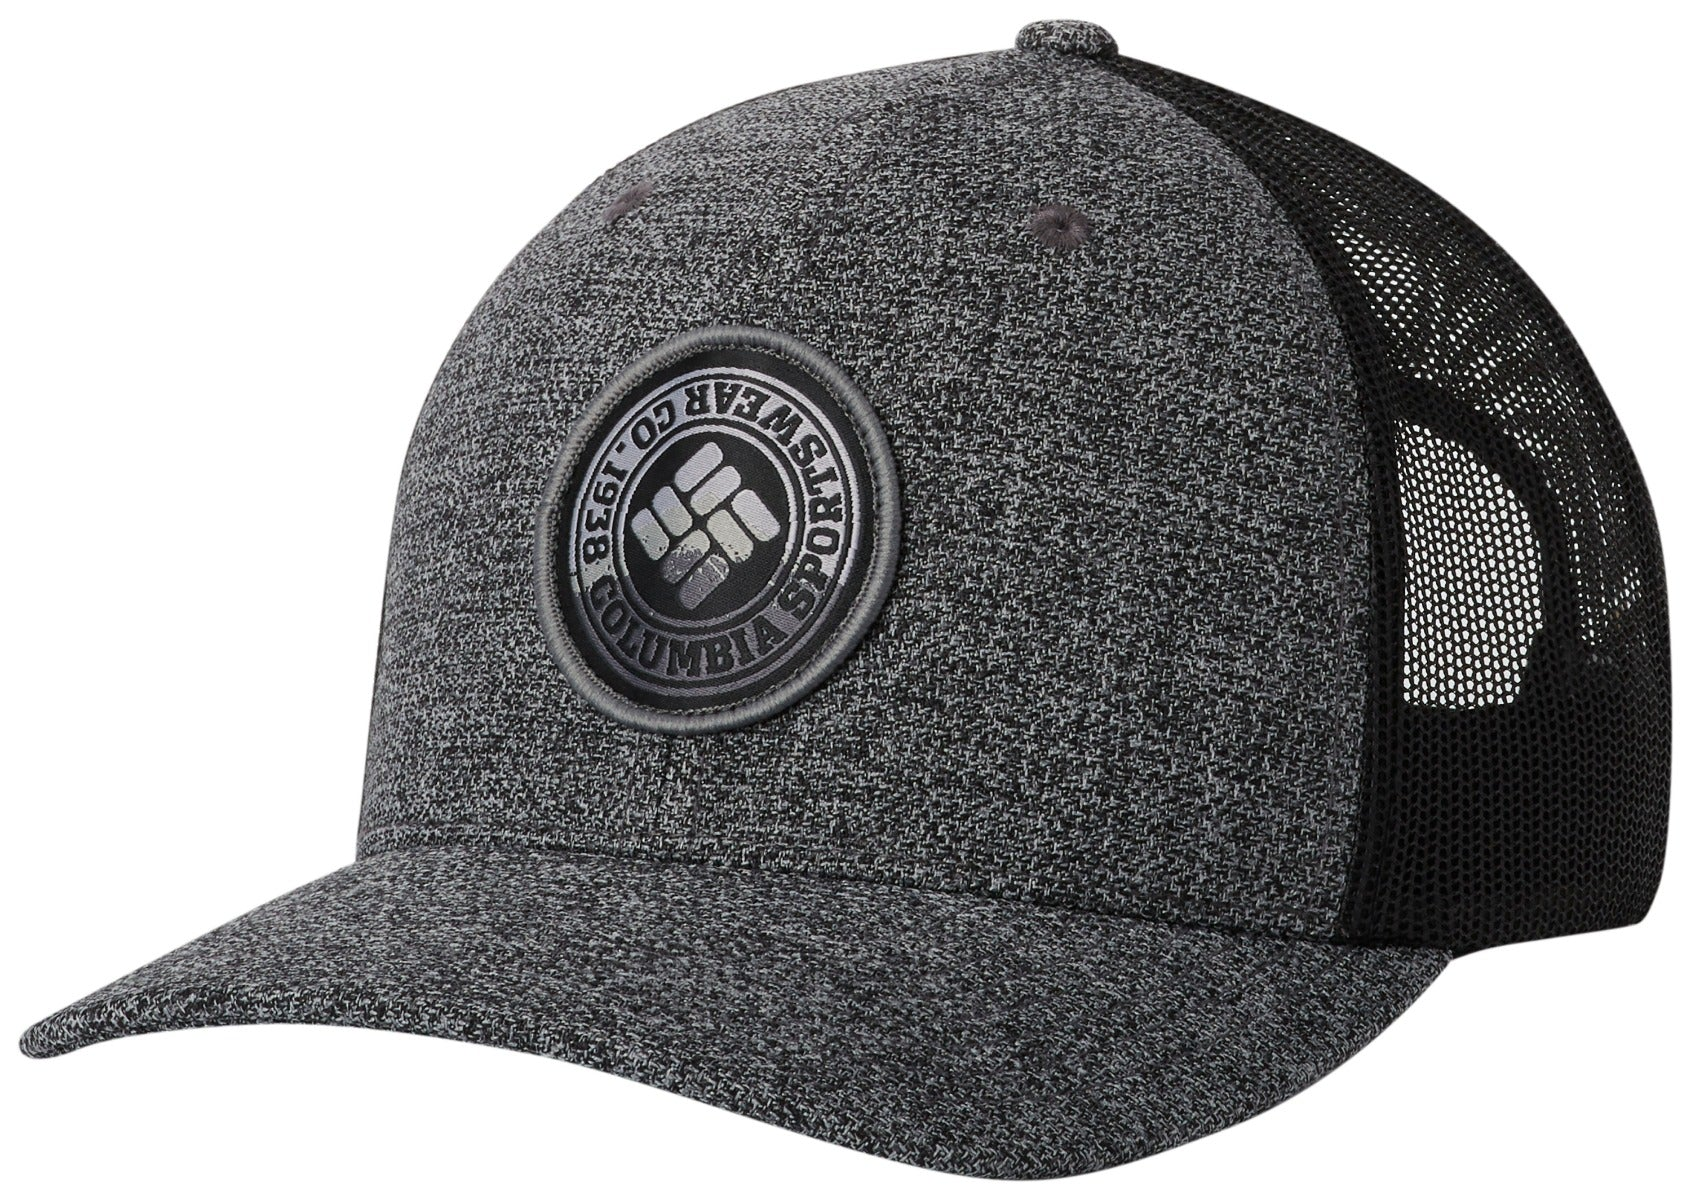 Columbia Mesh Snap Back Unisex Hat Grill